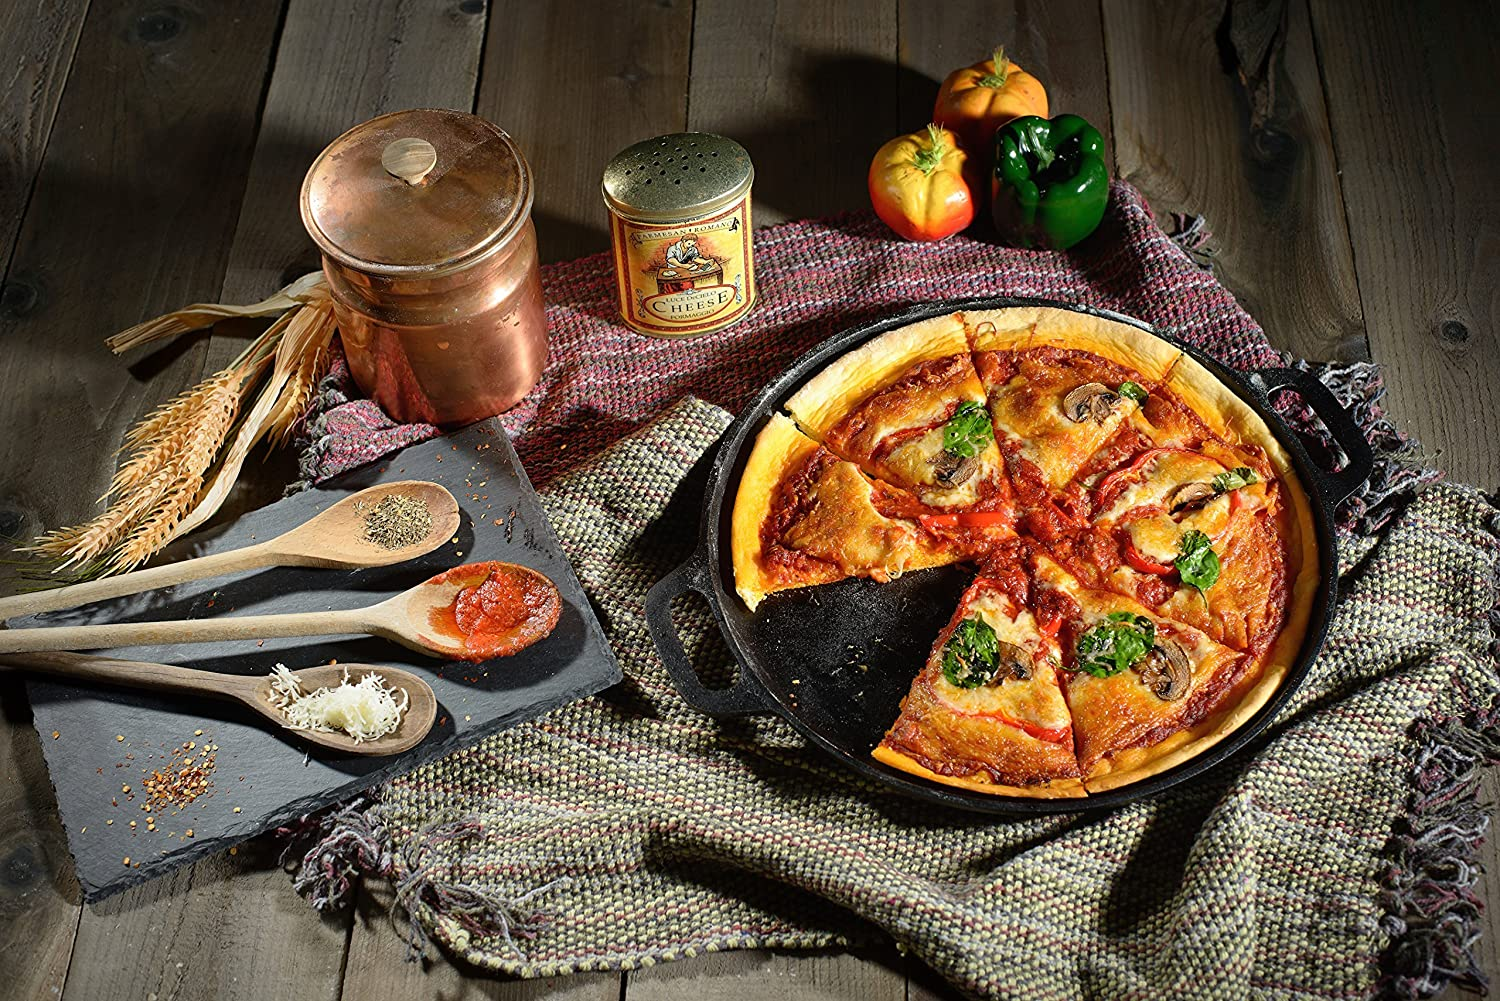 14-inch Cast Iron Pizza Pan Pre-Seasoned Crispy Crust Round Oven Griddle with Handles for Grilling Baking BBQ